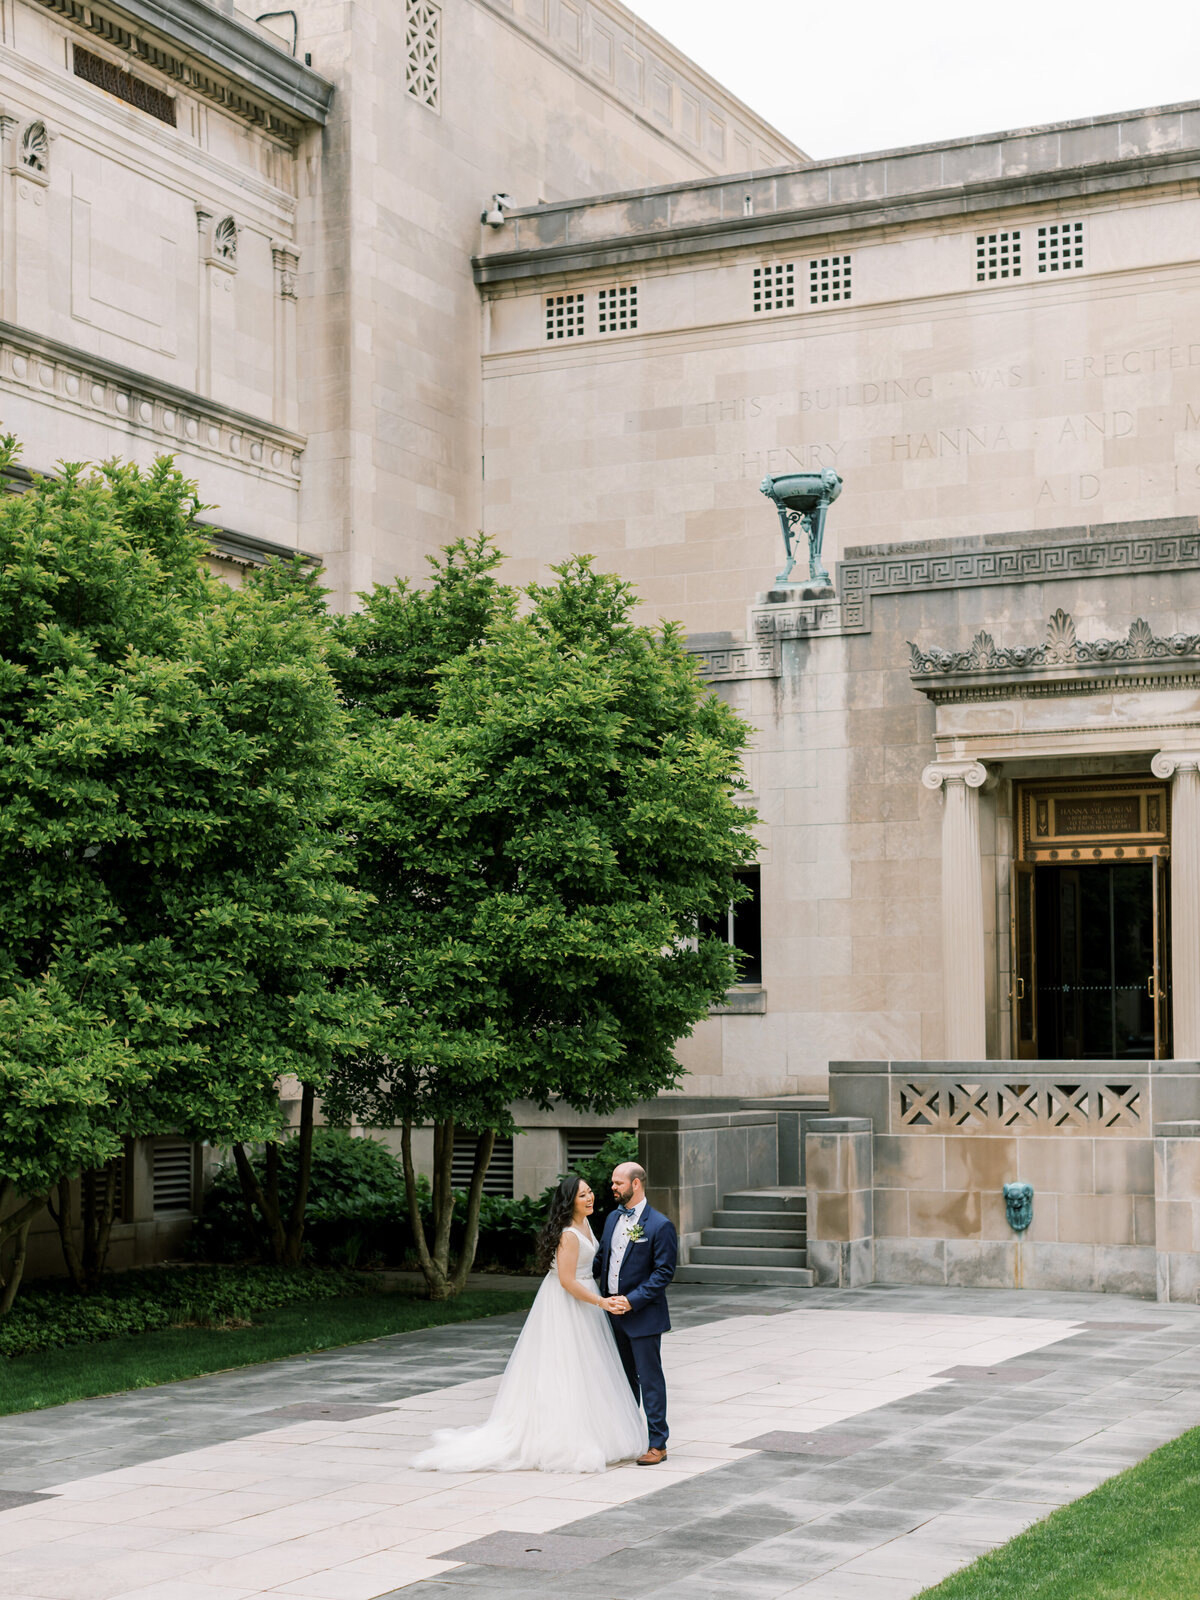 Tiffaney Childs Photography-Florida Wedding Photographer-Christina + Alek-Cincinnati Art Museum-32